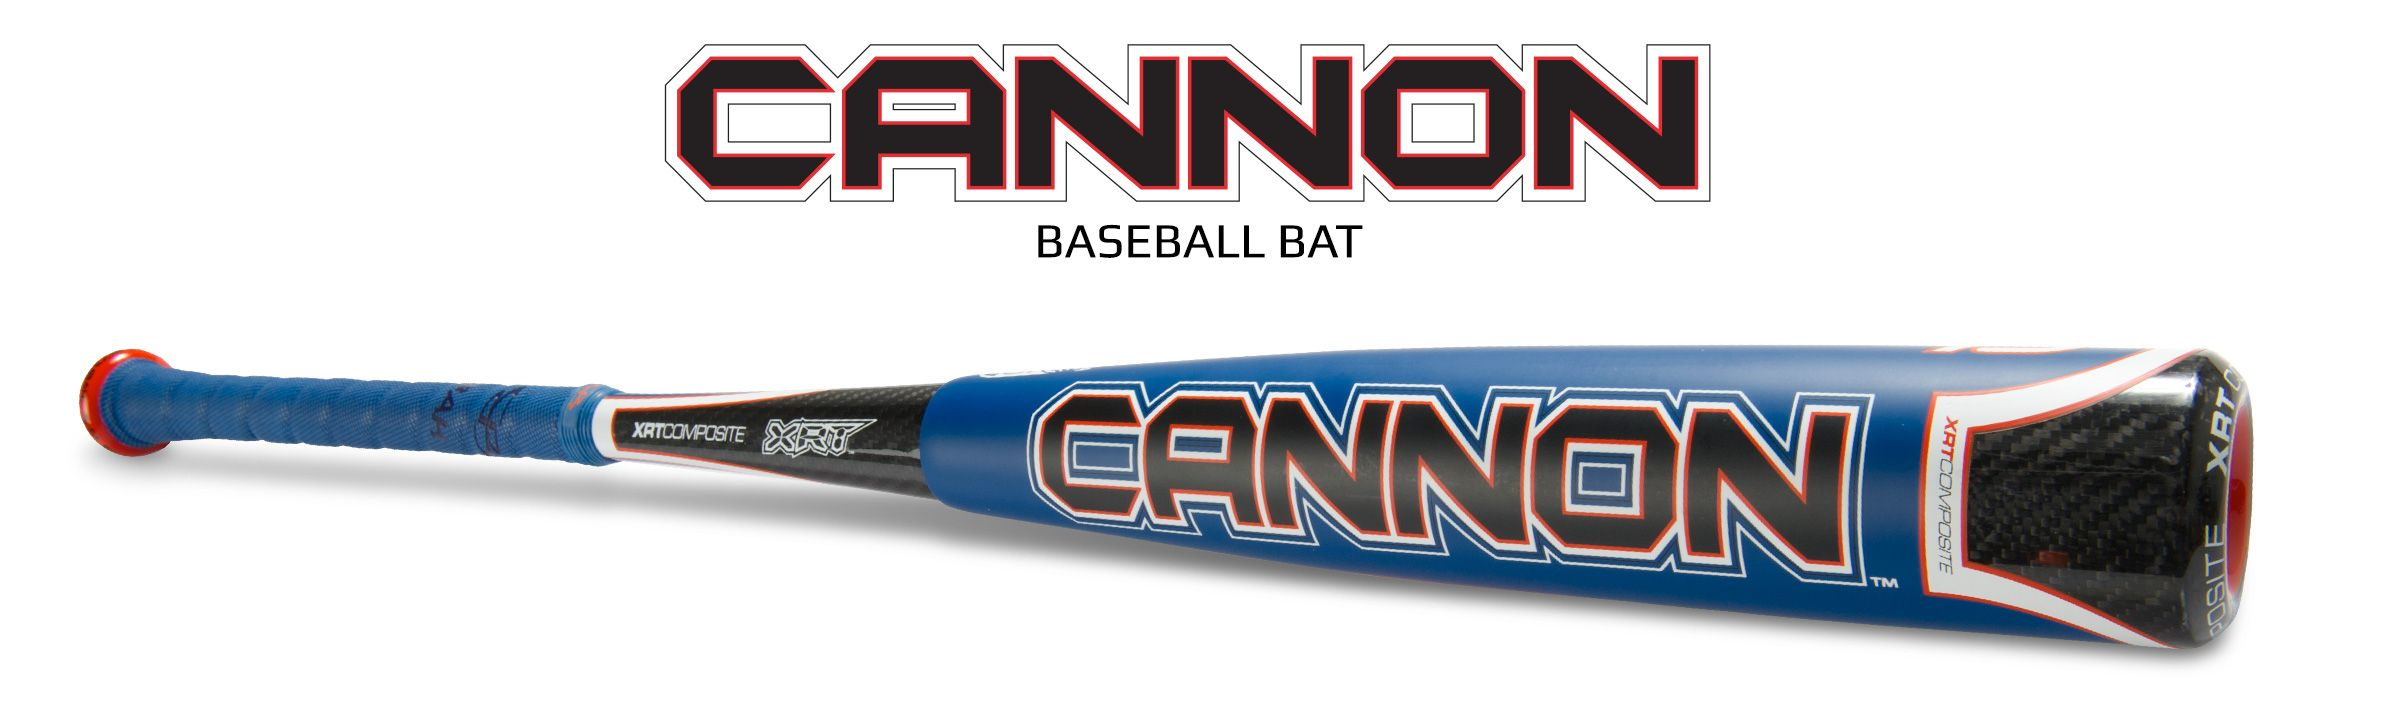 baseball bat boombah cannon